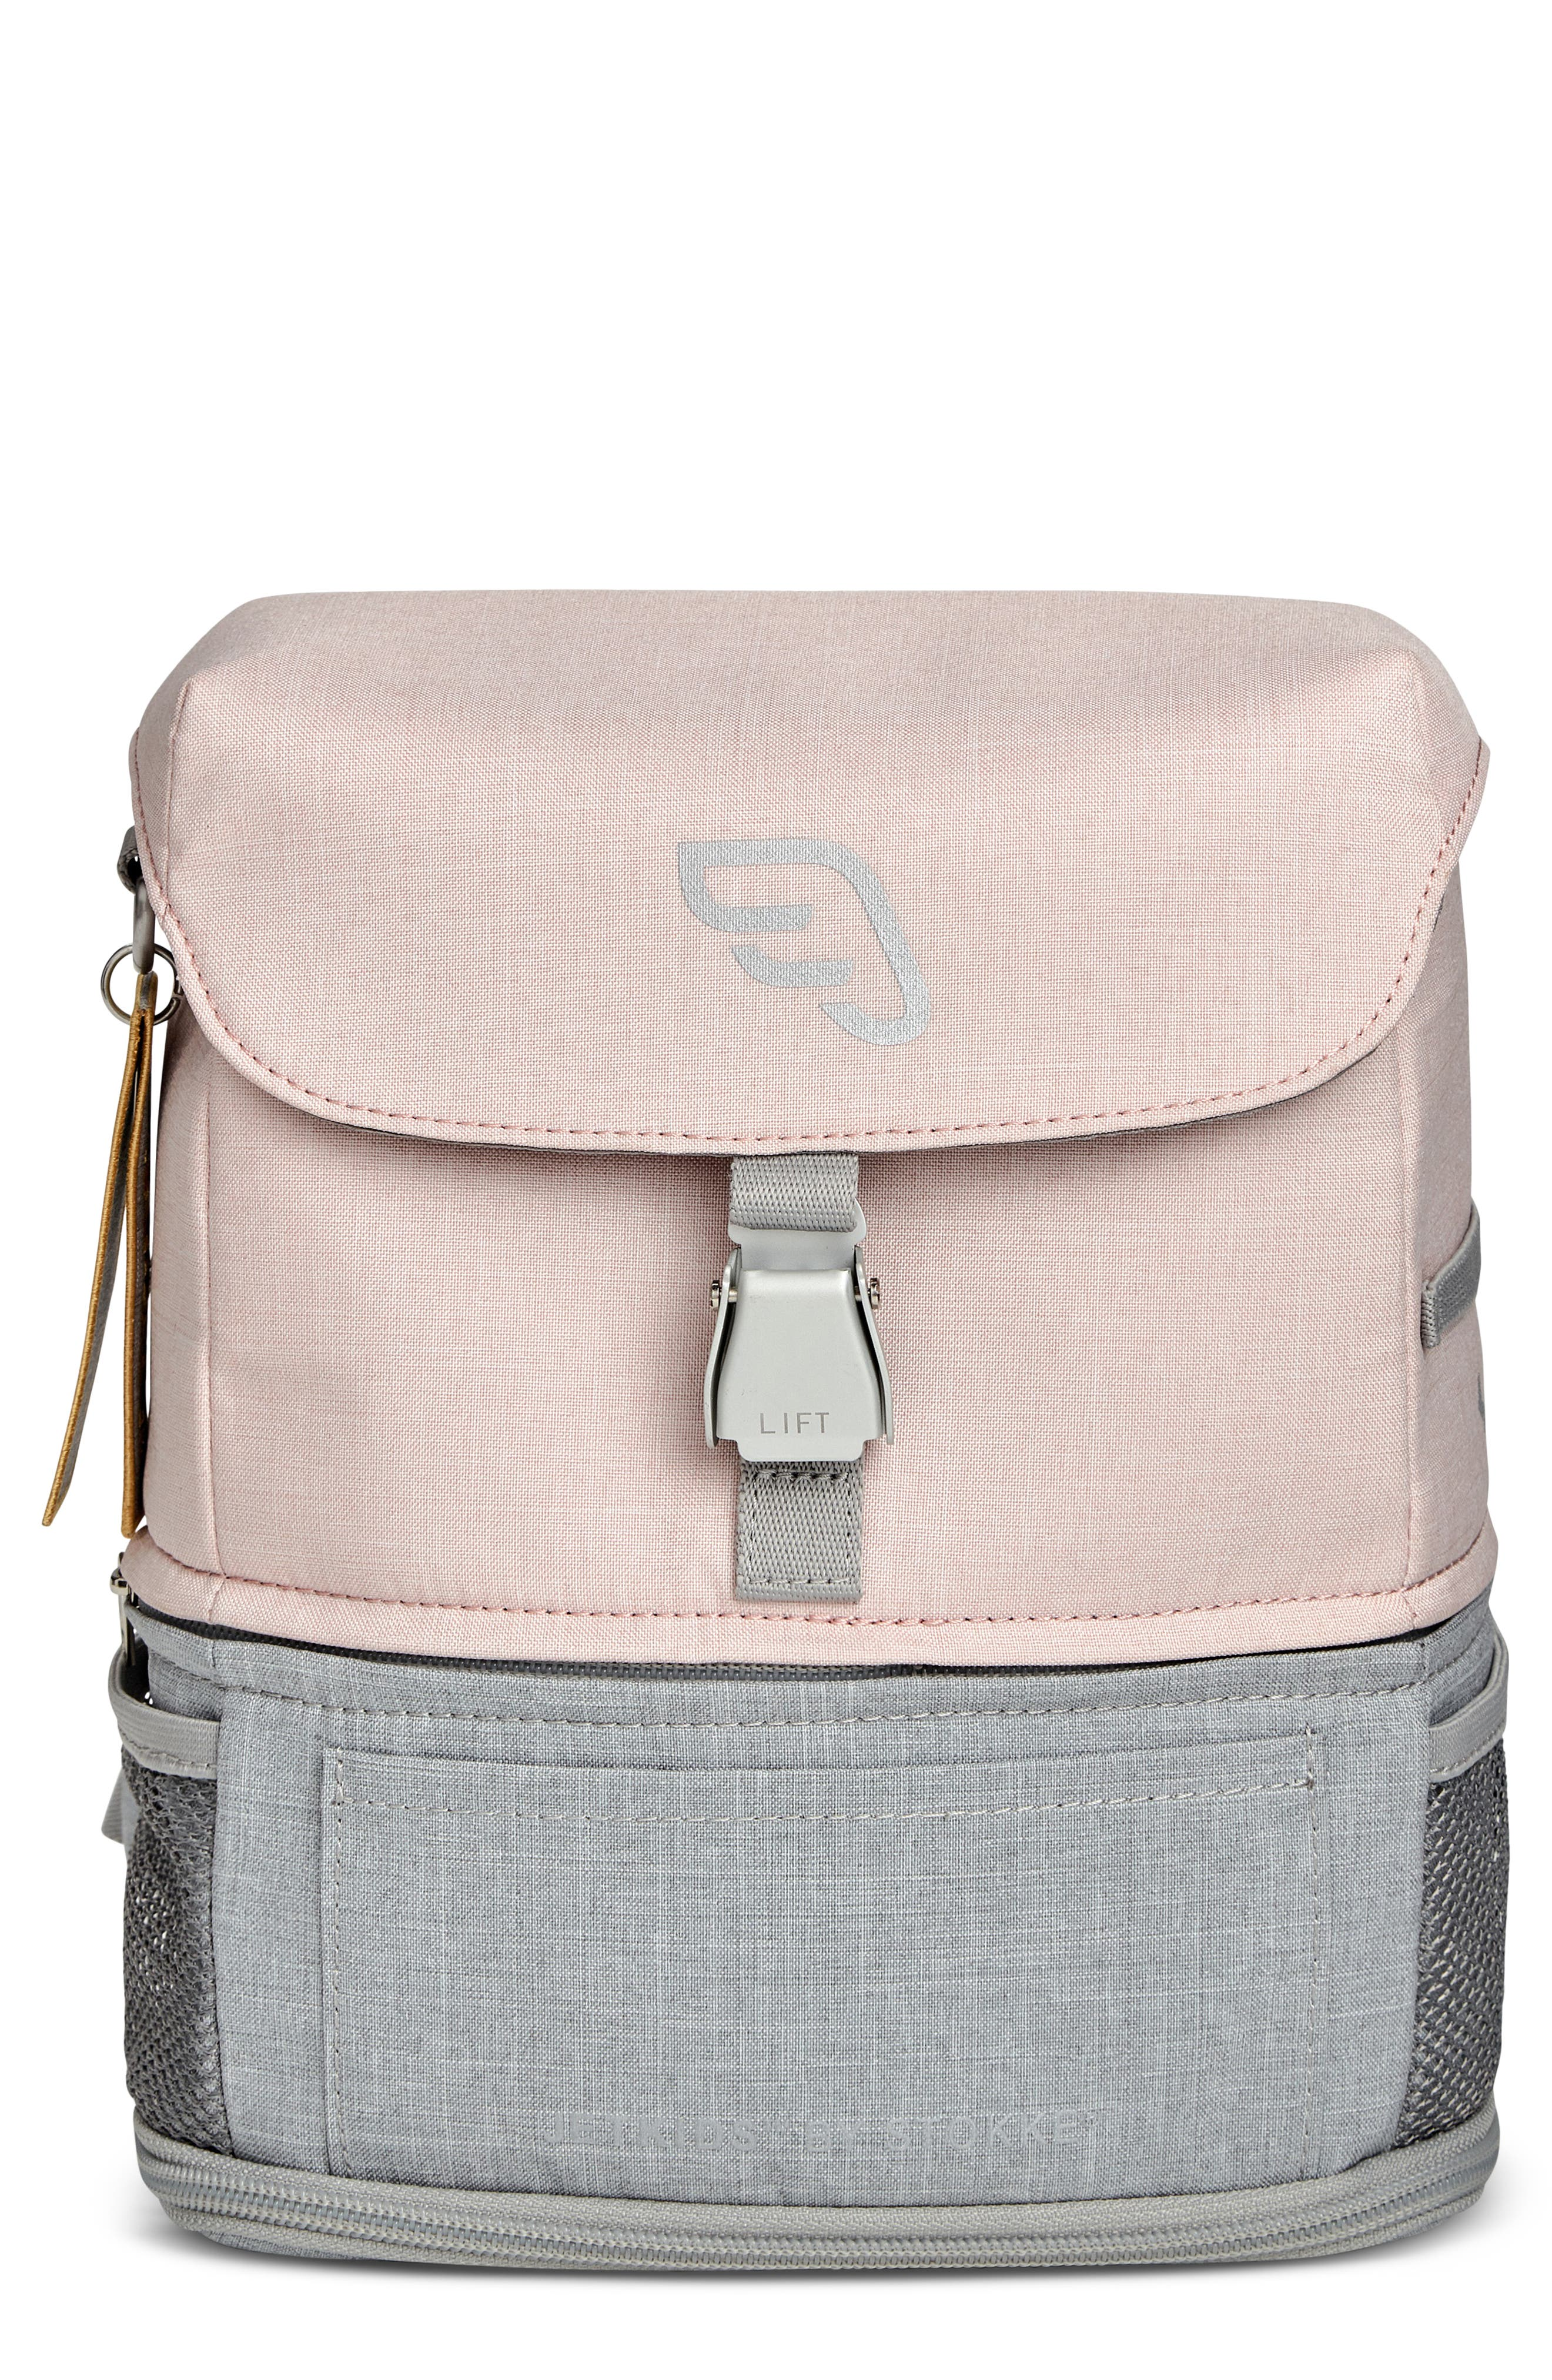 Stokke Jetkids By Stokke Crew Expandable Backpack - Pink